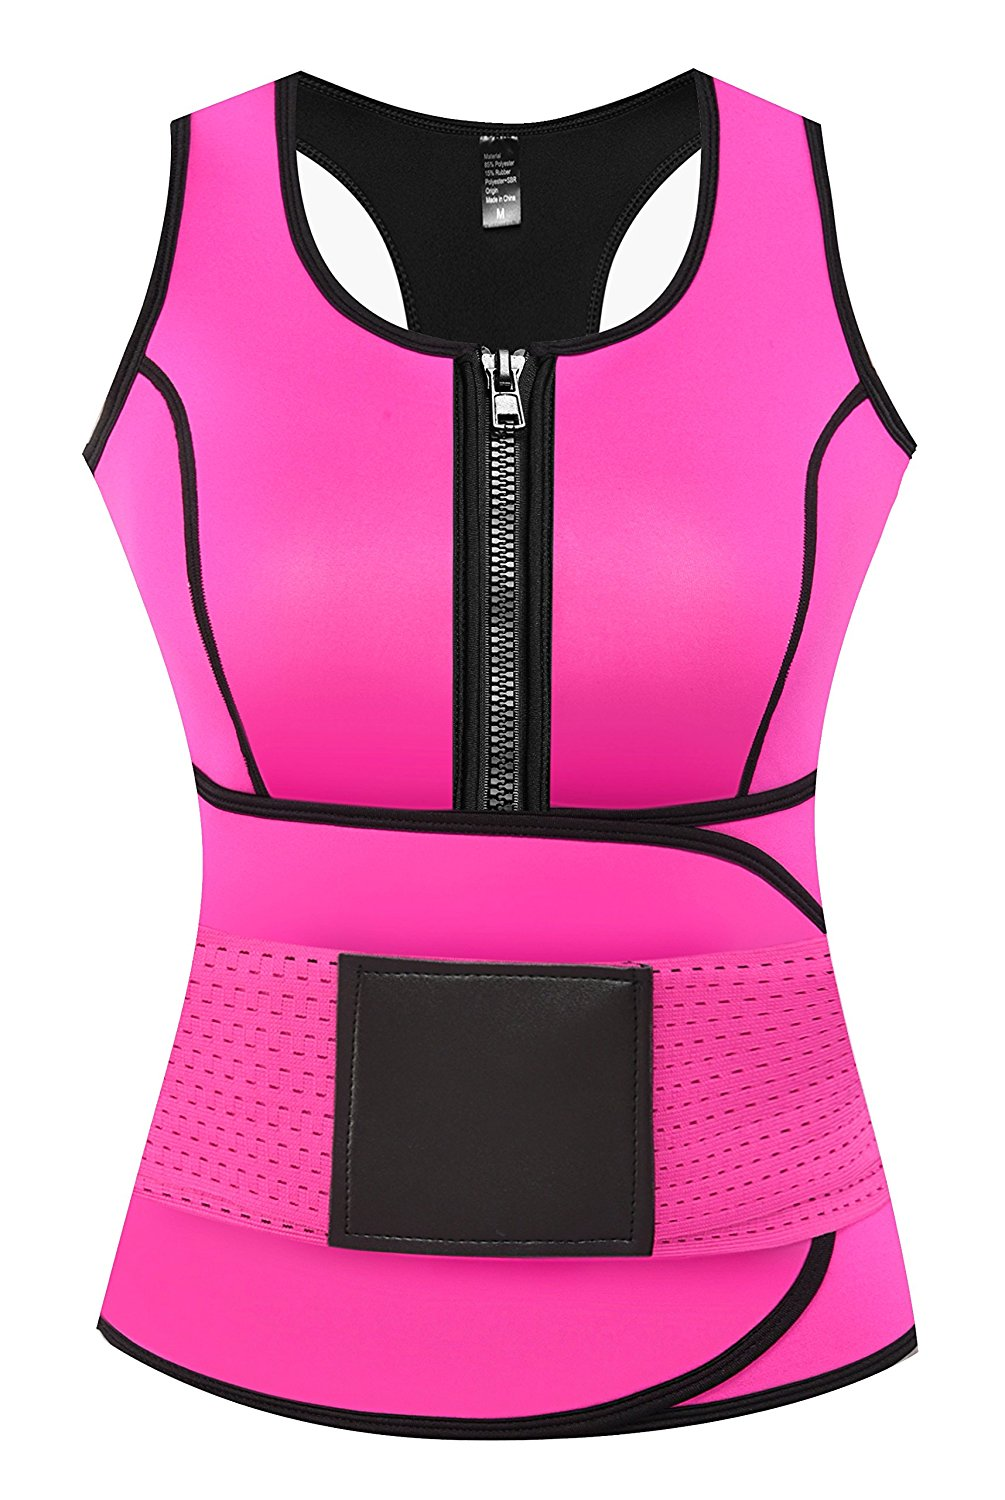 f3188cee0b629 Camellias Corsets - Camellias Womens Neoprene Sweat Sauna Suit Waist  Trainer Vest with Adjustable Waist Trimmer Belt for Weight Loss Workout  Body Shaper ...